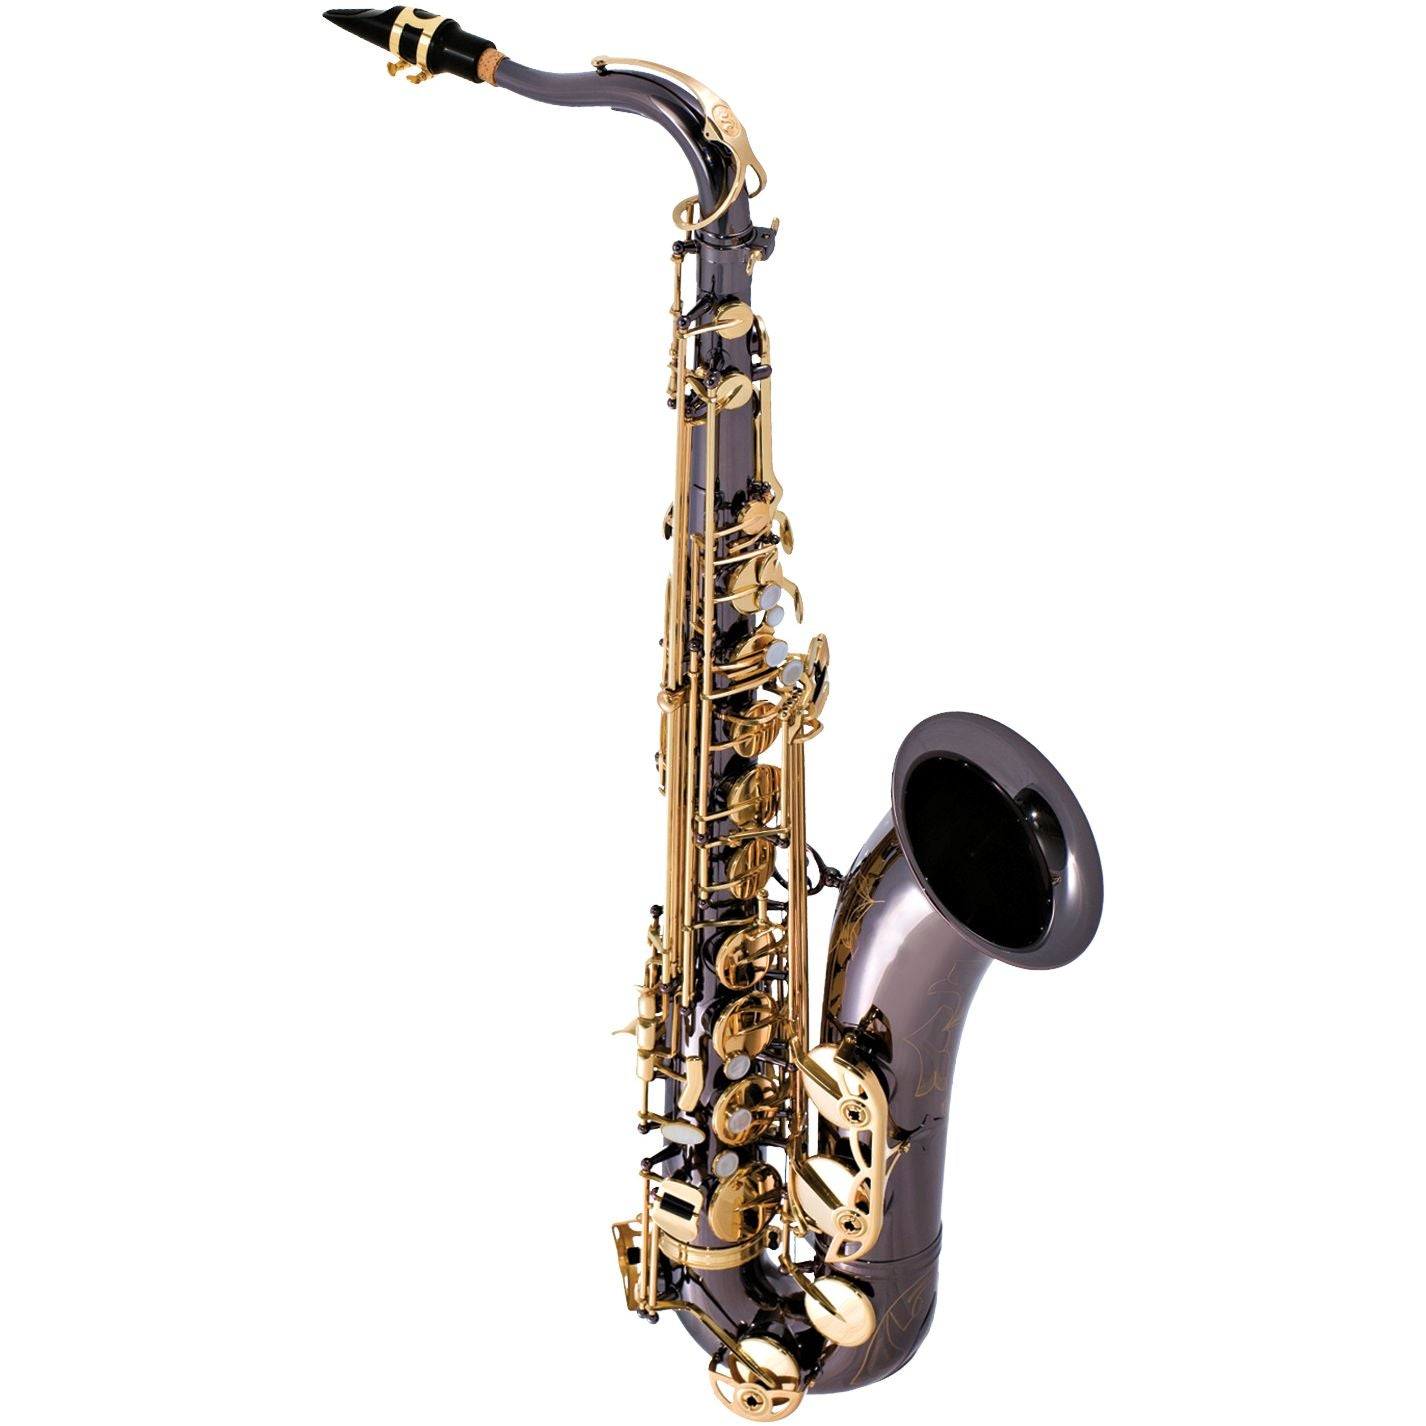 Selmer STS280RB LaVoix II Tenor Saxophone Outfit - Black Nickel